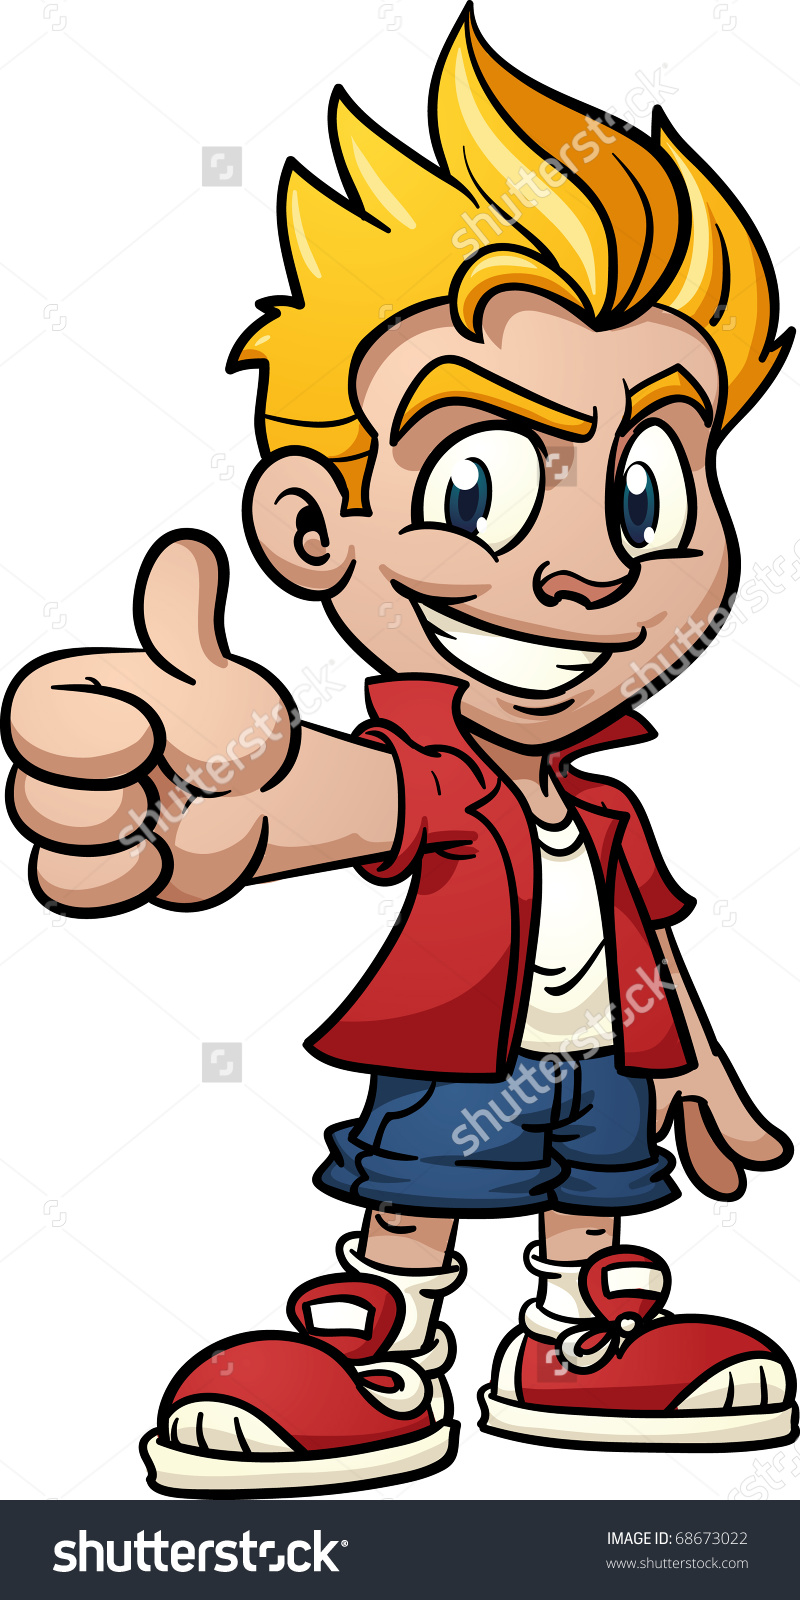 Cool kid clipart 8 » Clipart Station.